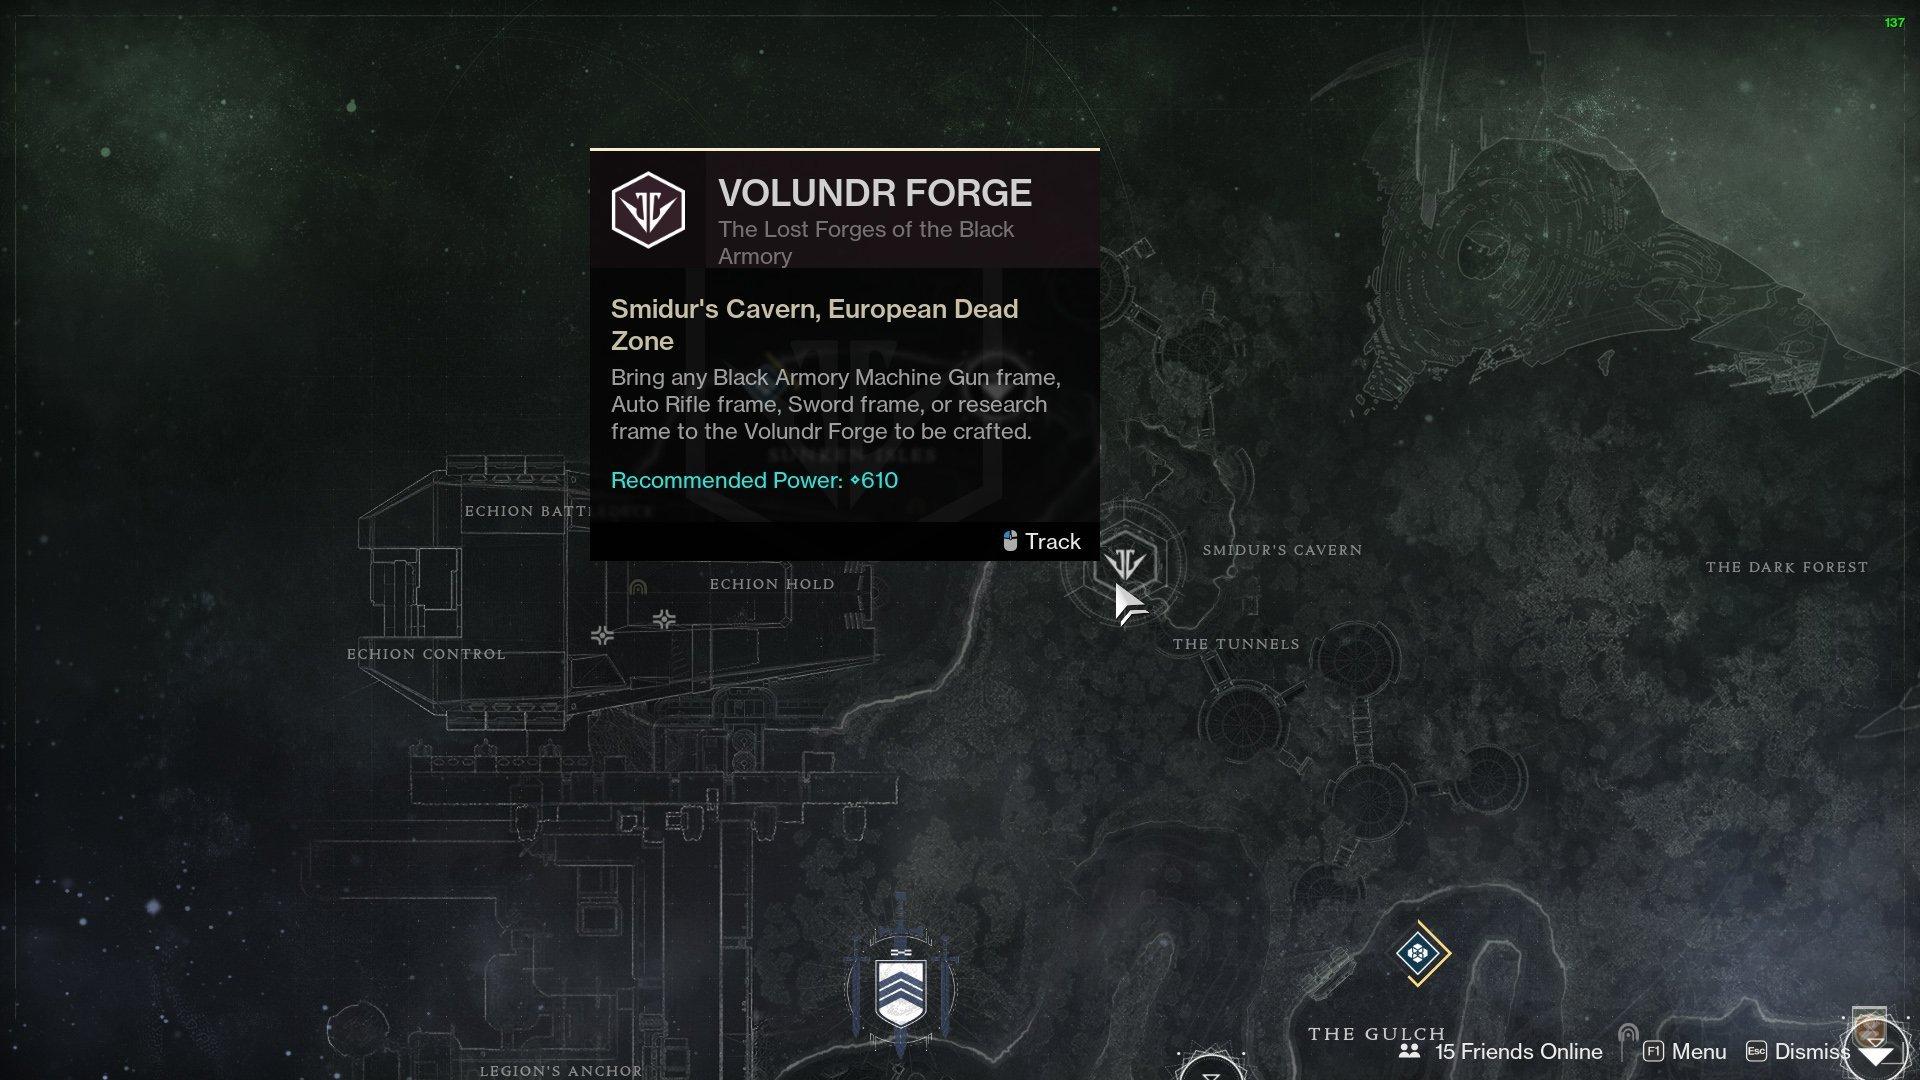 How To Get The Rasmussen Clan Shader In Destiny 2 Guide Stash The forge rotation schedule will help you know what forge is currently playable in destiny 2. the rasmussen clan shader in destiny 2